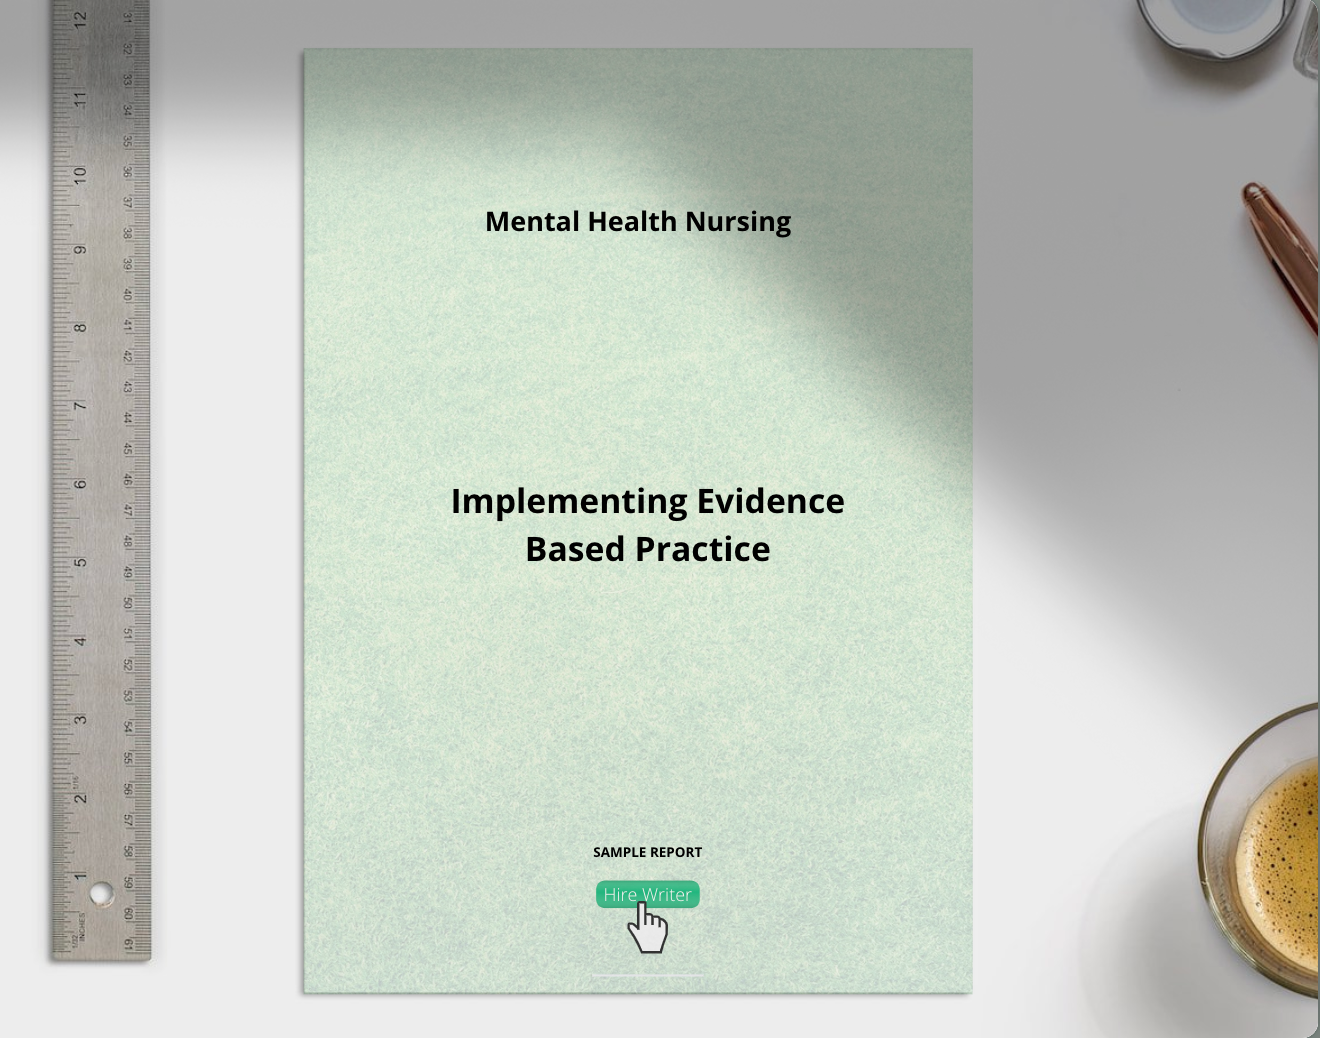 Mental Health Nursing, Implementing Evidence Based Practice sample